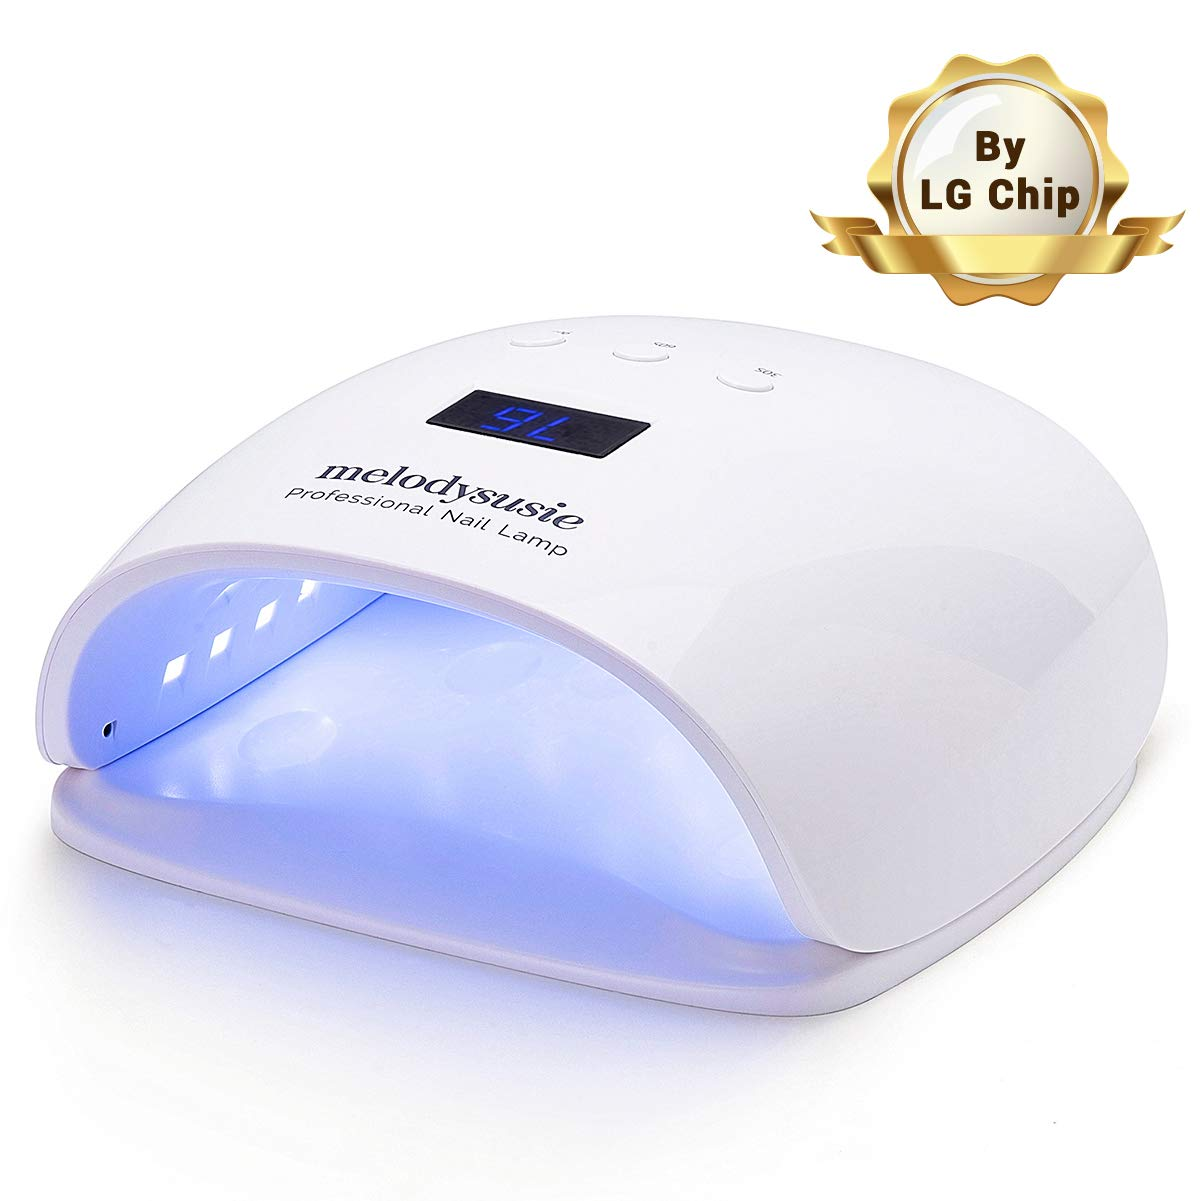 MelodySusie 54W UV LED Nail Lamp, Professional LG Chip Gel Nails UV Light Dryer with 30 Dual LED UV Beads, Power Saving Mode, 3 Timer Setting, Sensor, Detachable Tray for Acrylic, Gel Polishes